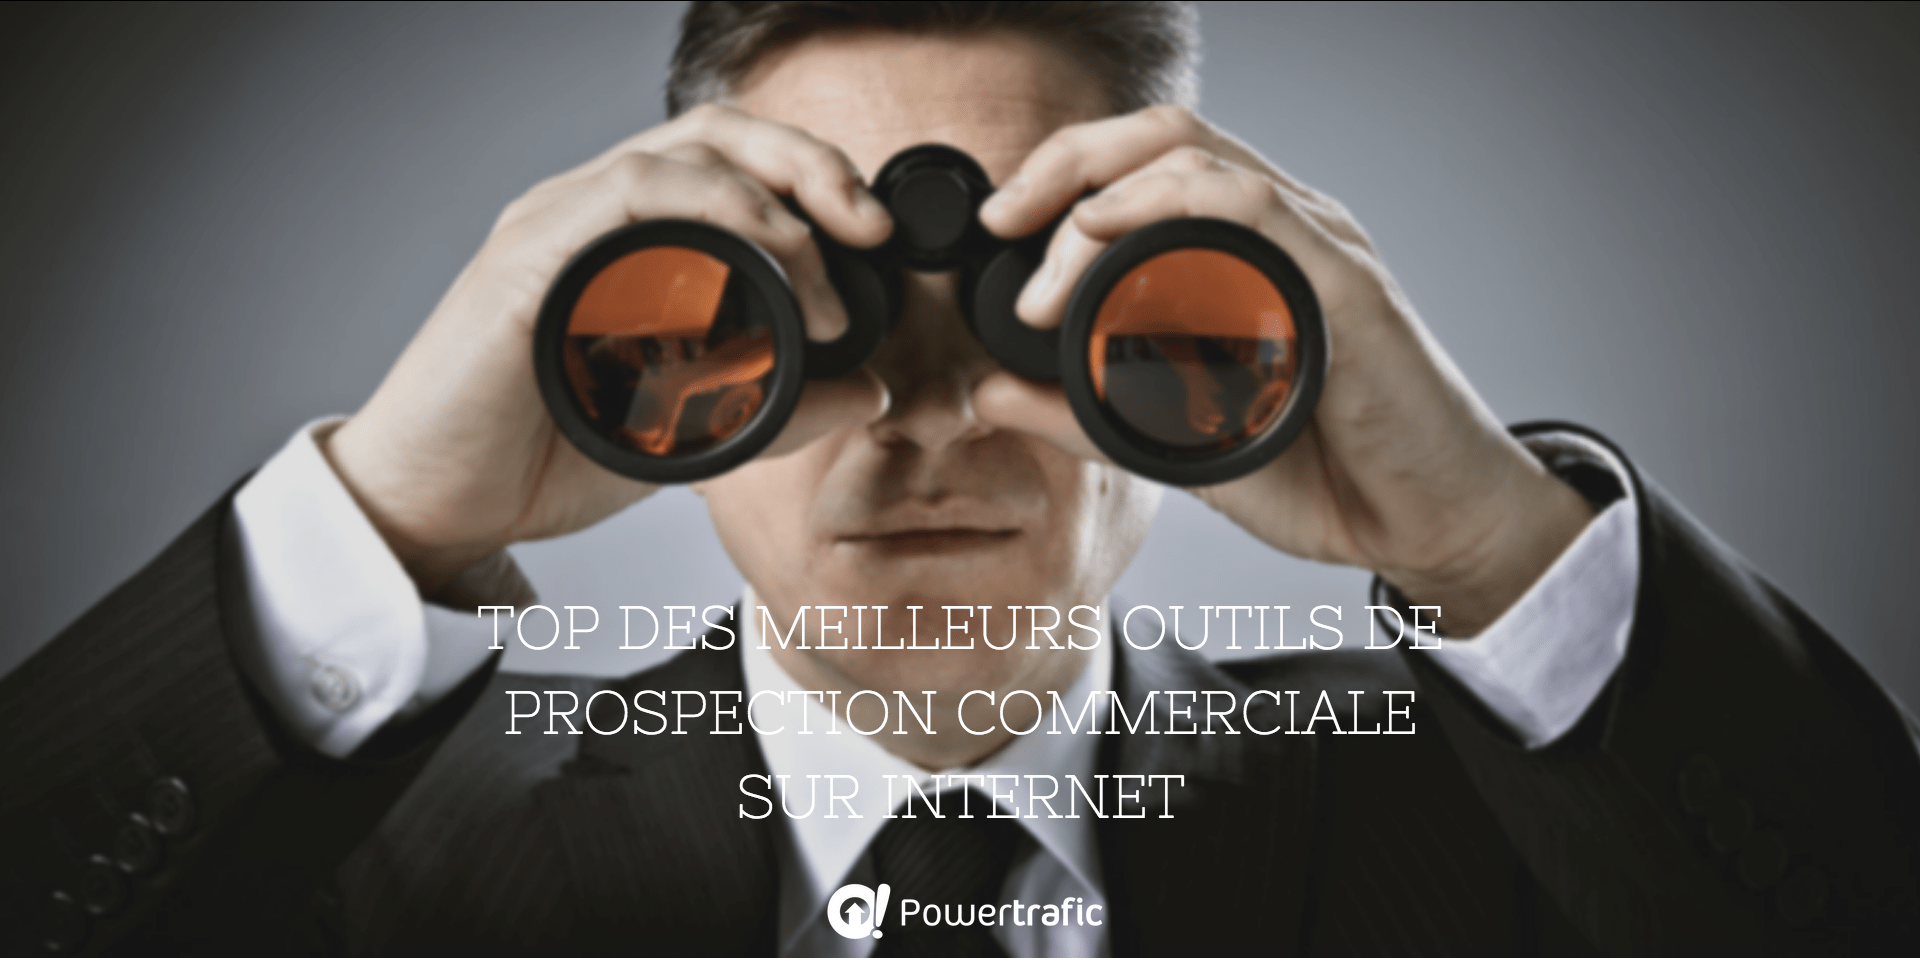 outils-prospection-commerciale-internet